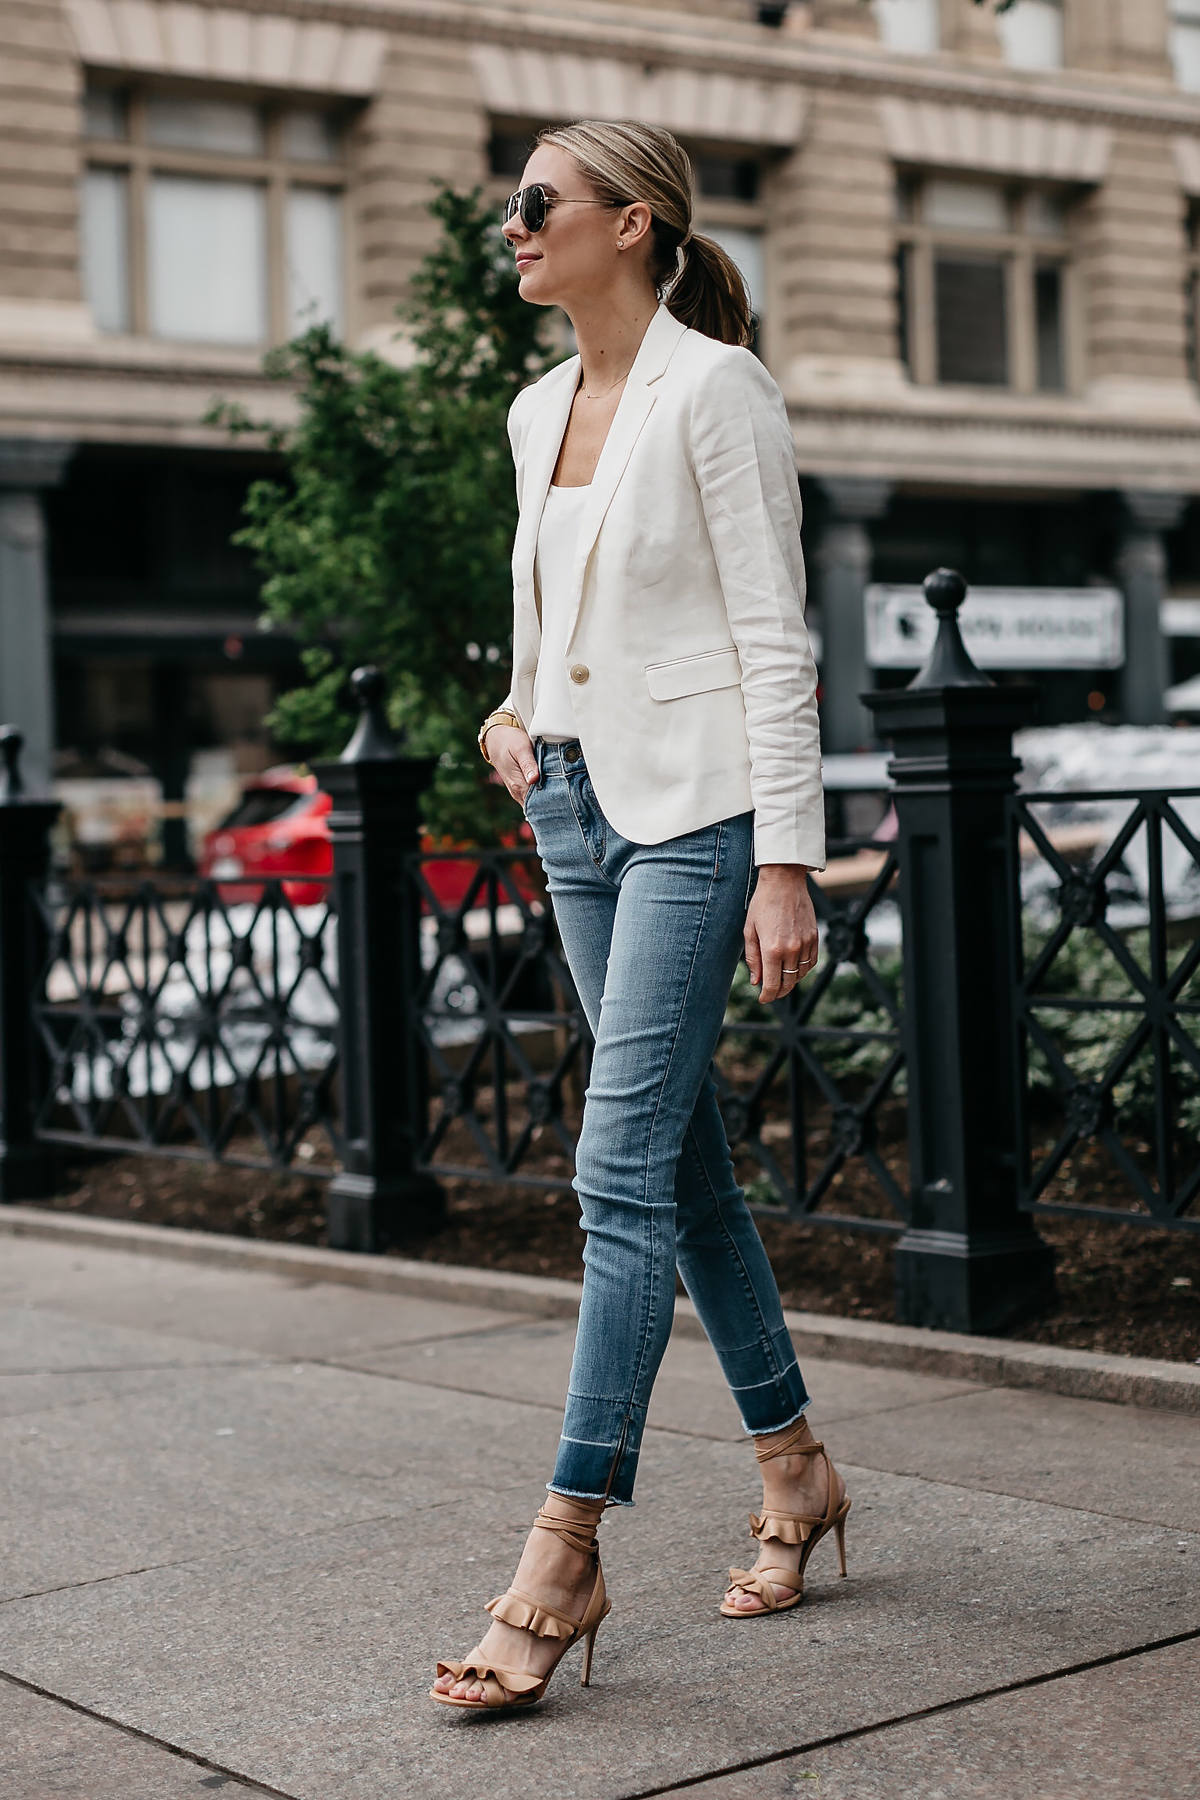 Blonde Woman Wearing Ann Taylor White Blazer White Cami Denim Jeans Tan Ruffle Lace Up Sandals Aviator Sunglasses Fashion Jackson Dallas Blogger Fashion Blogger Street Style